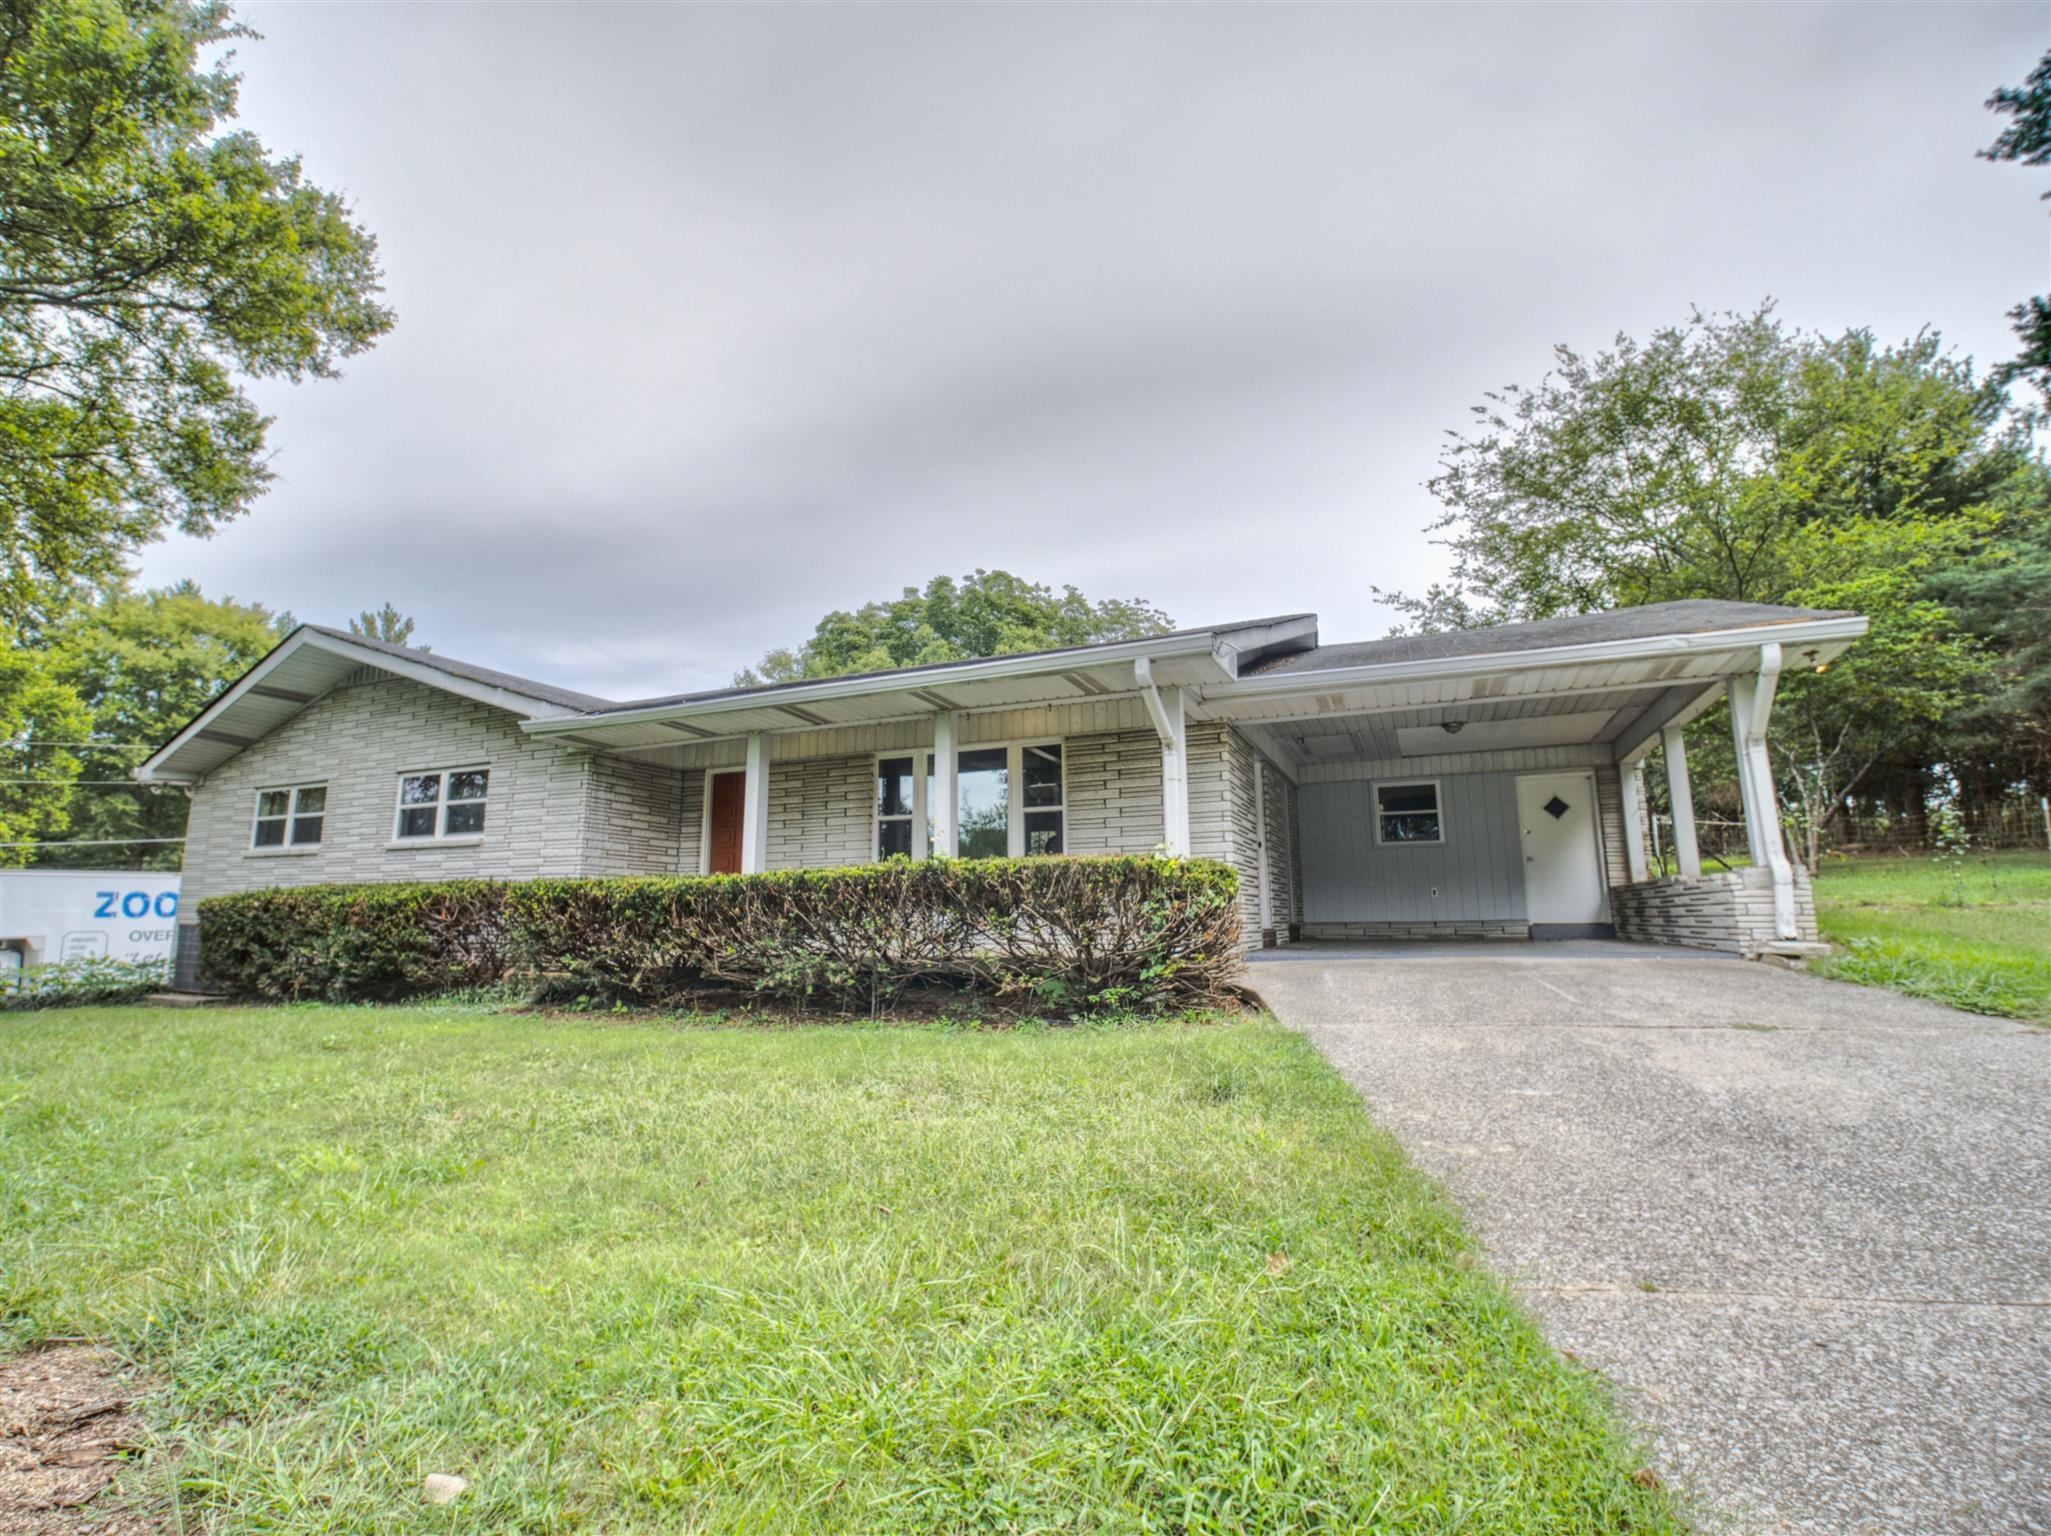 260 Dobbins Pike, Gallatin, TN 37066 - Gallatin, TN real estate listing